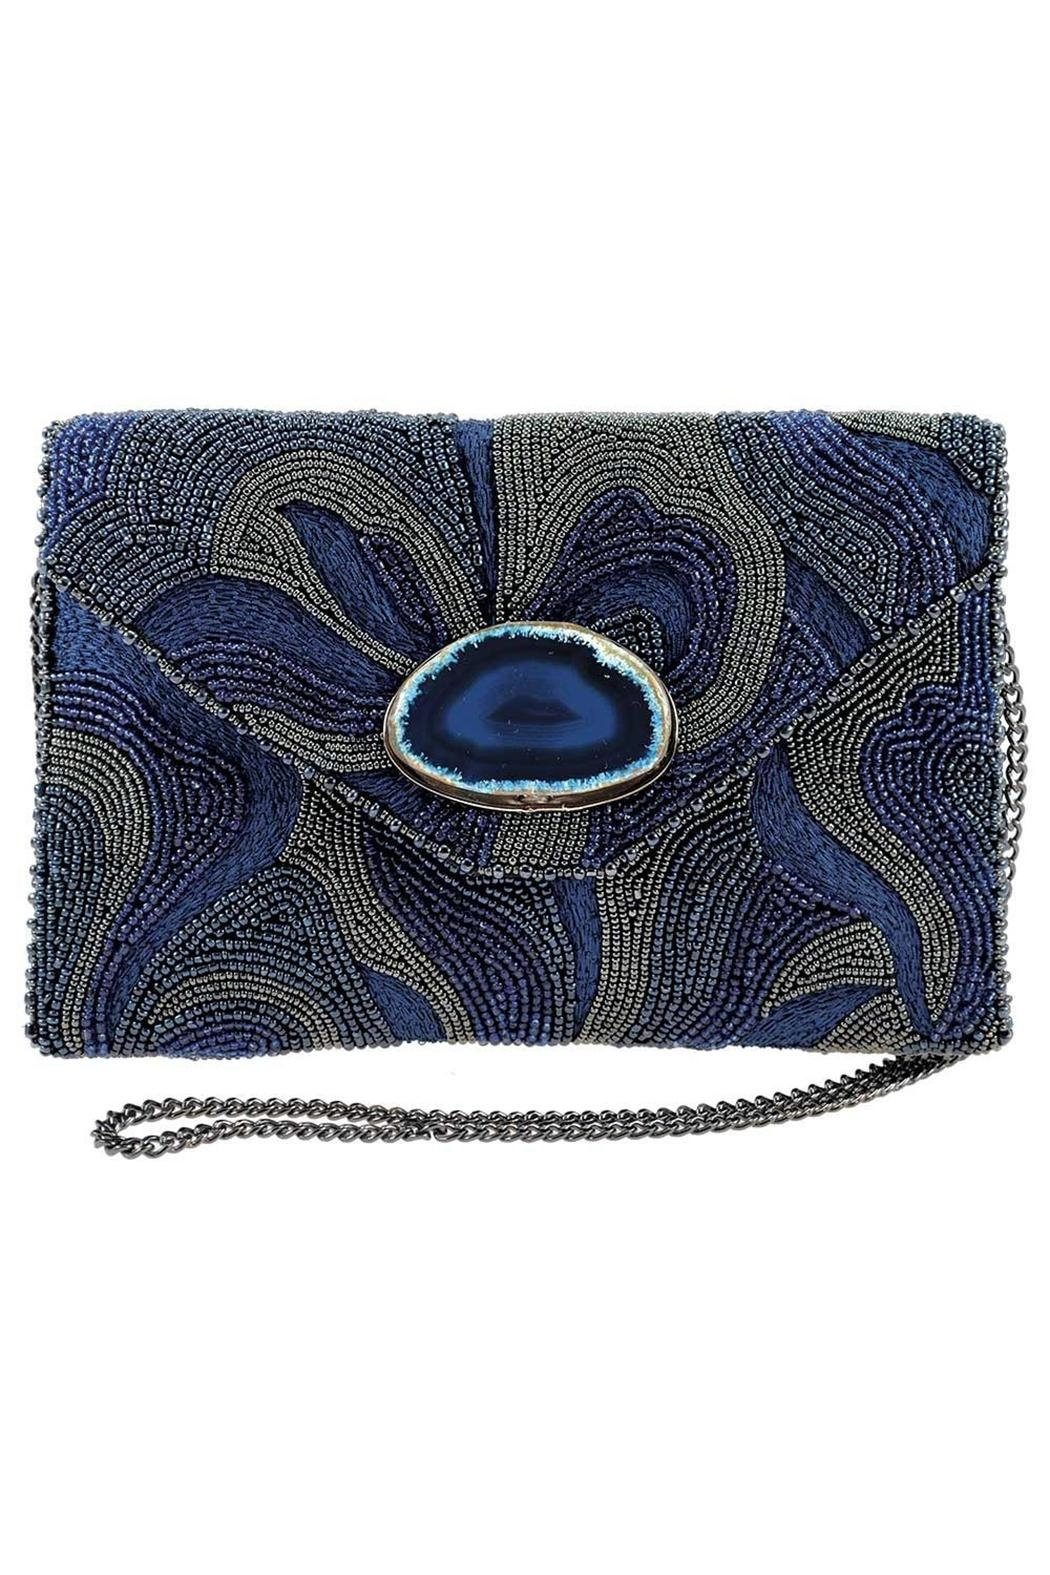 Mary Frances Earth Energy Handbag - Front Cropped Image